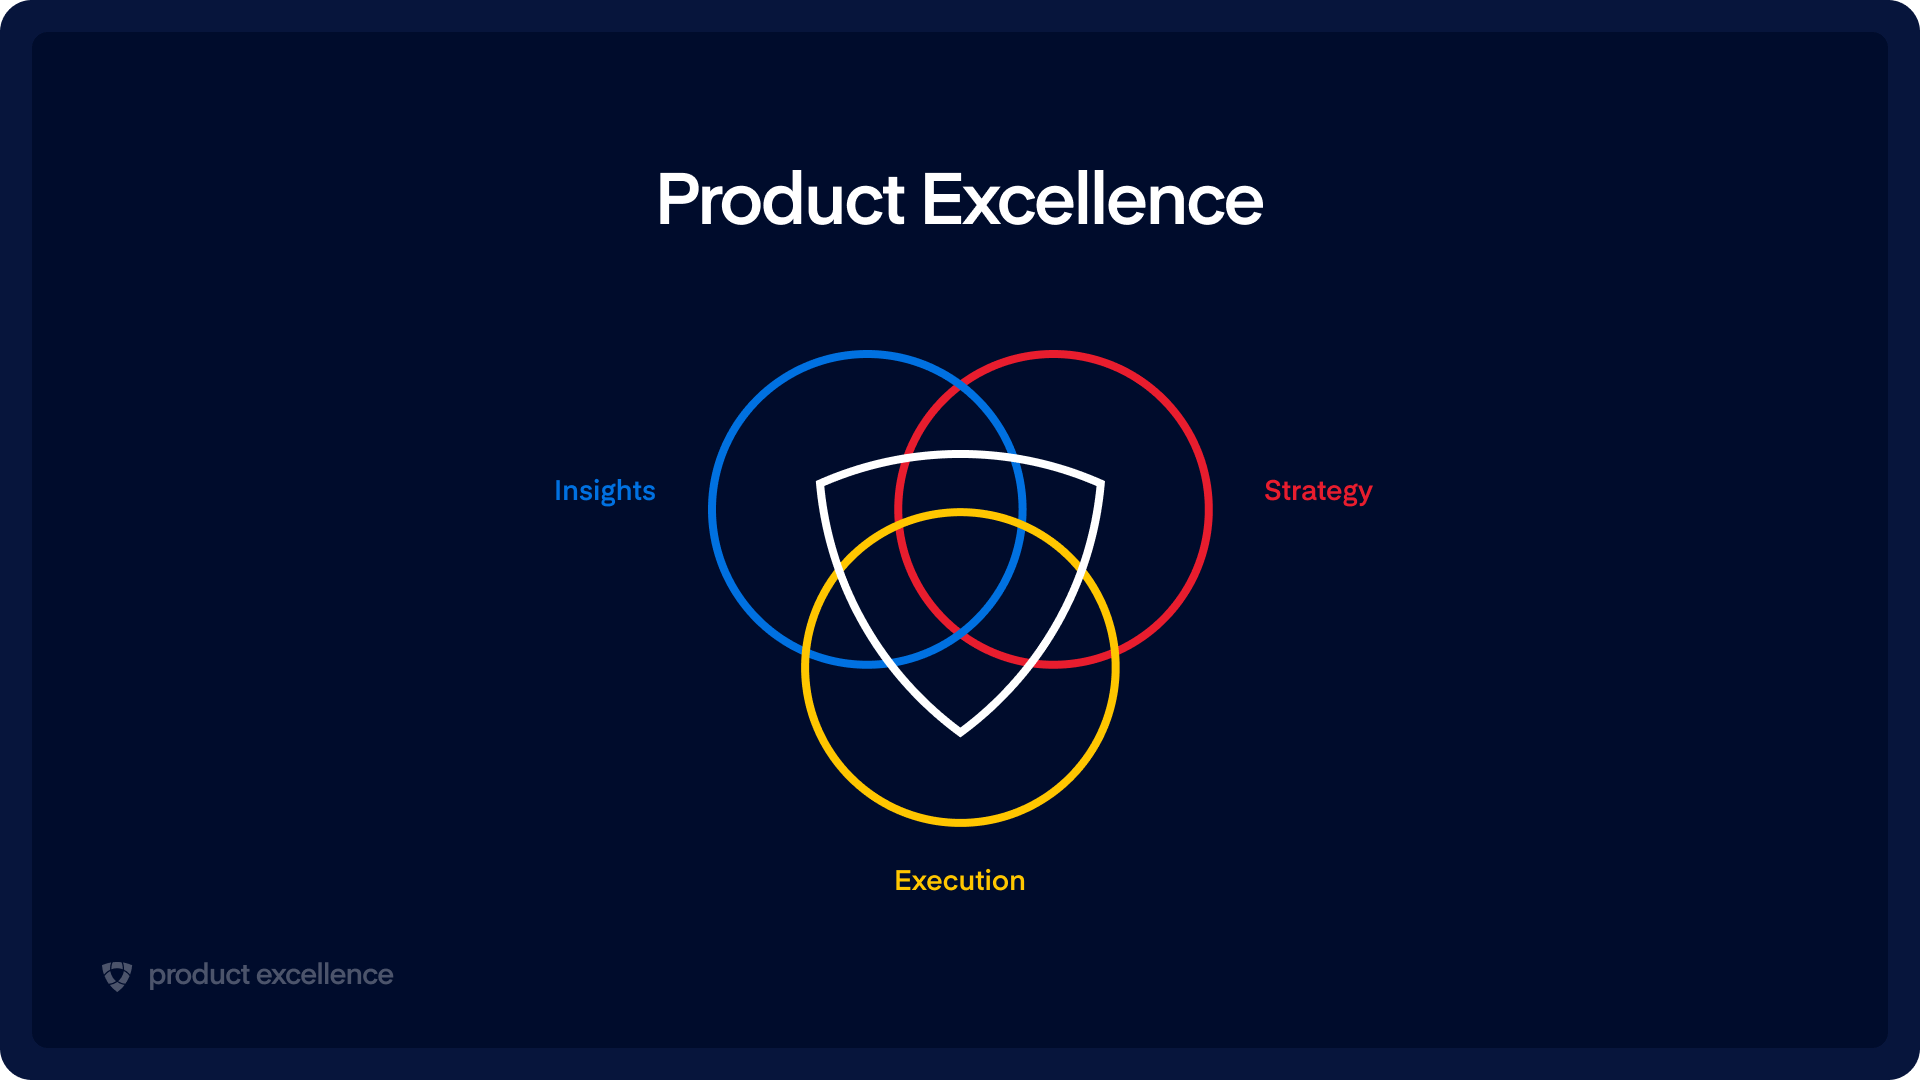 Product Excellence | Insights, strategy, execution